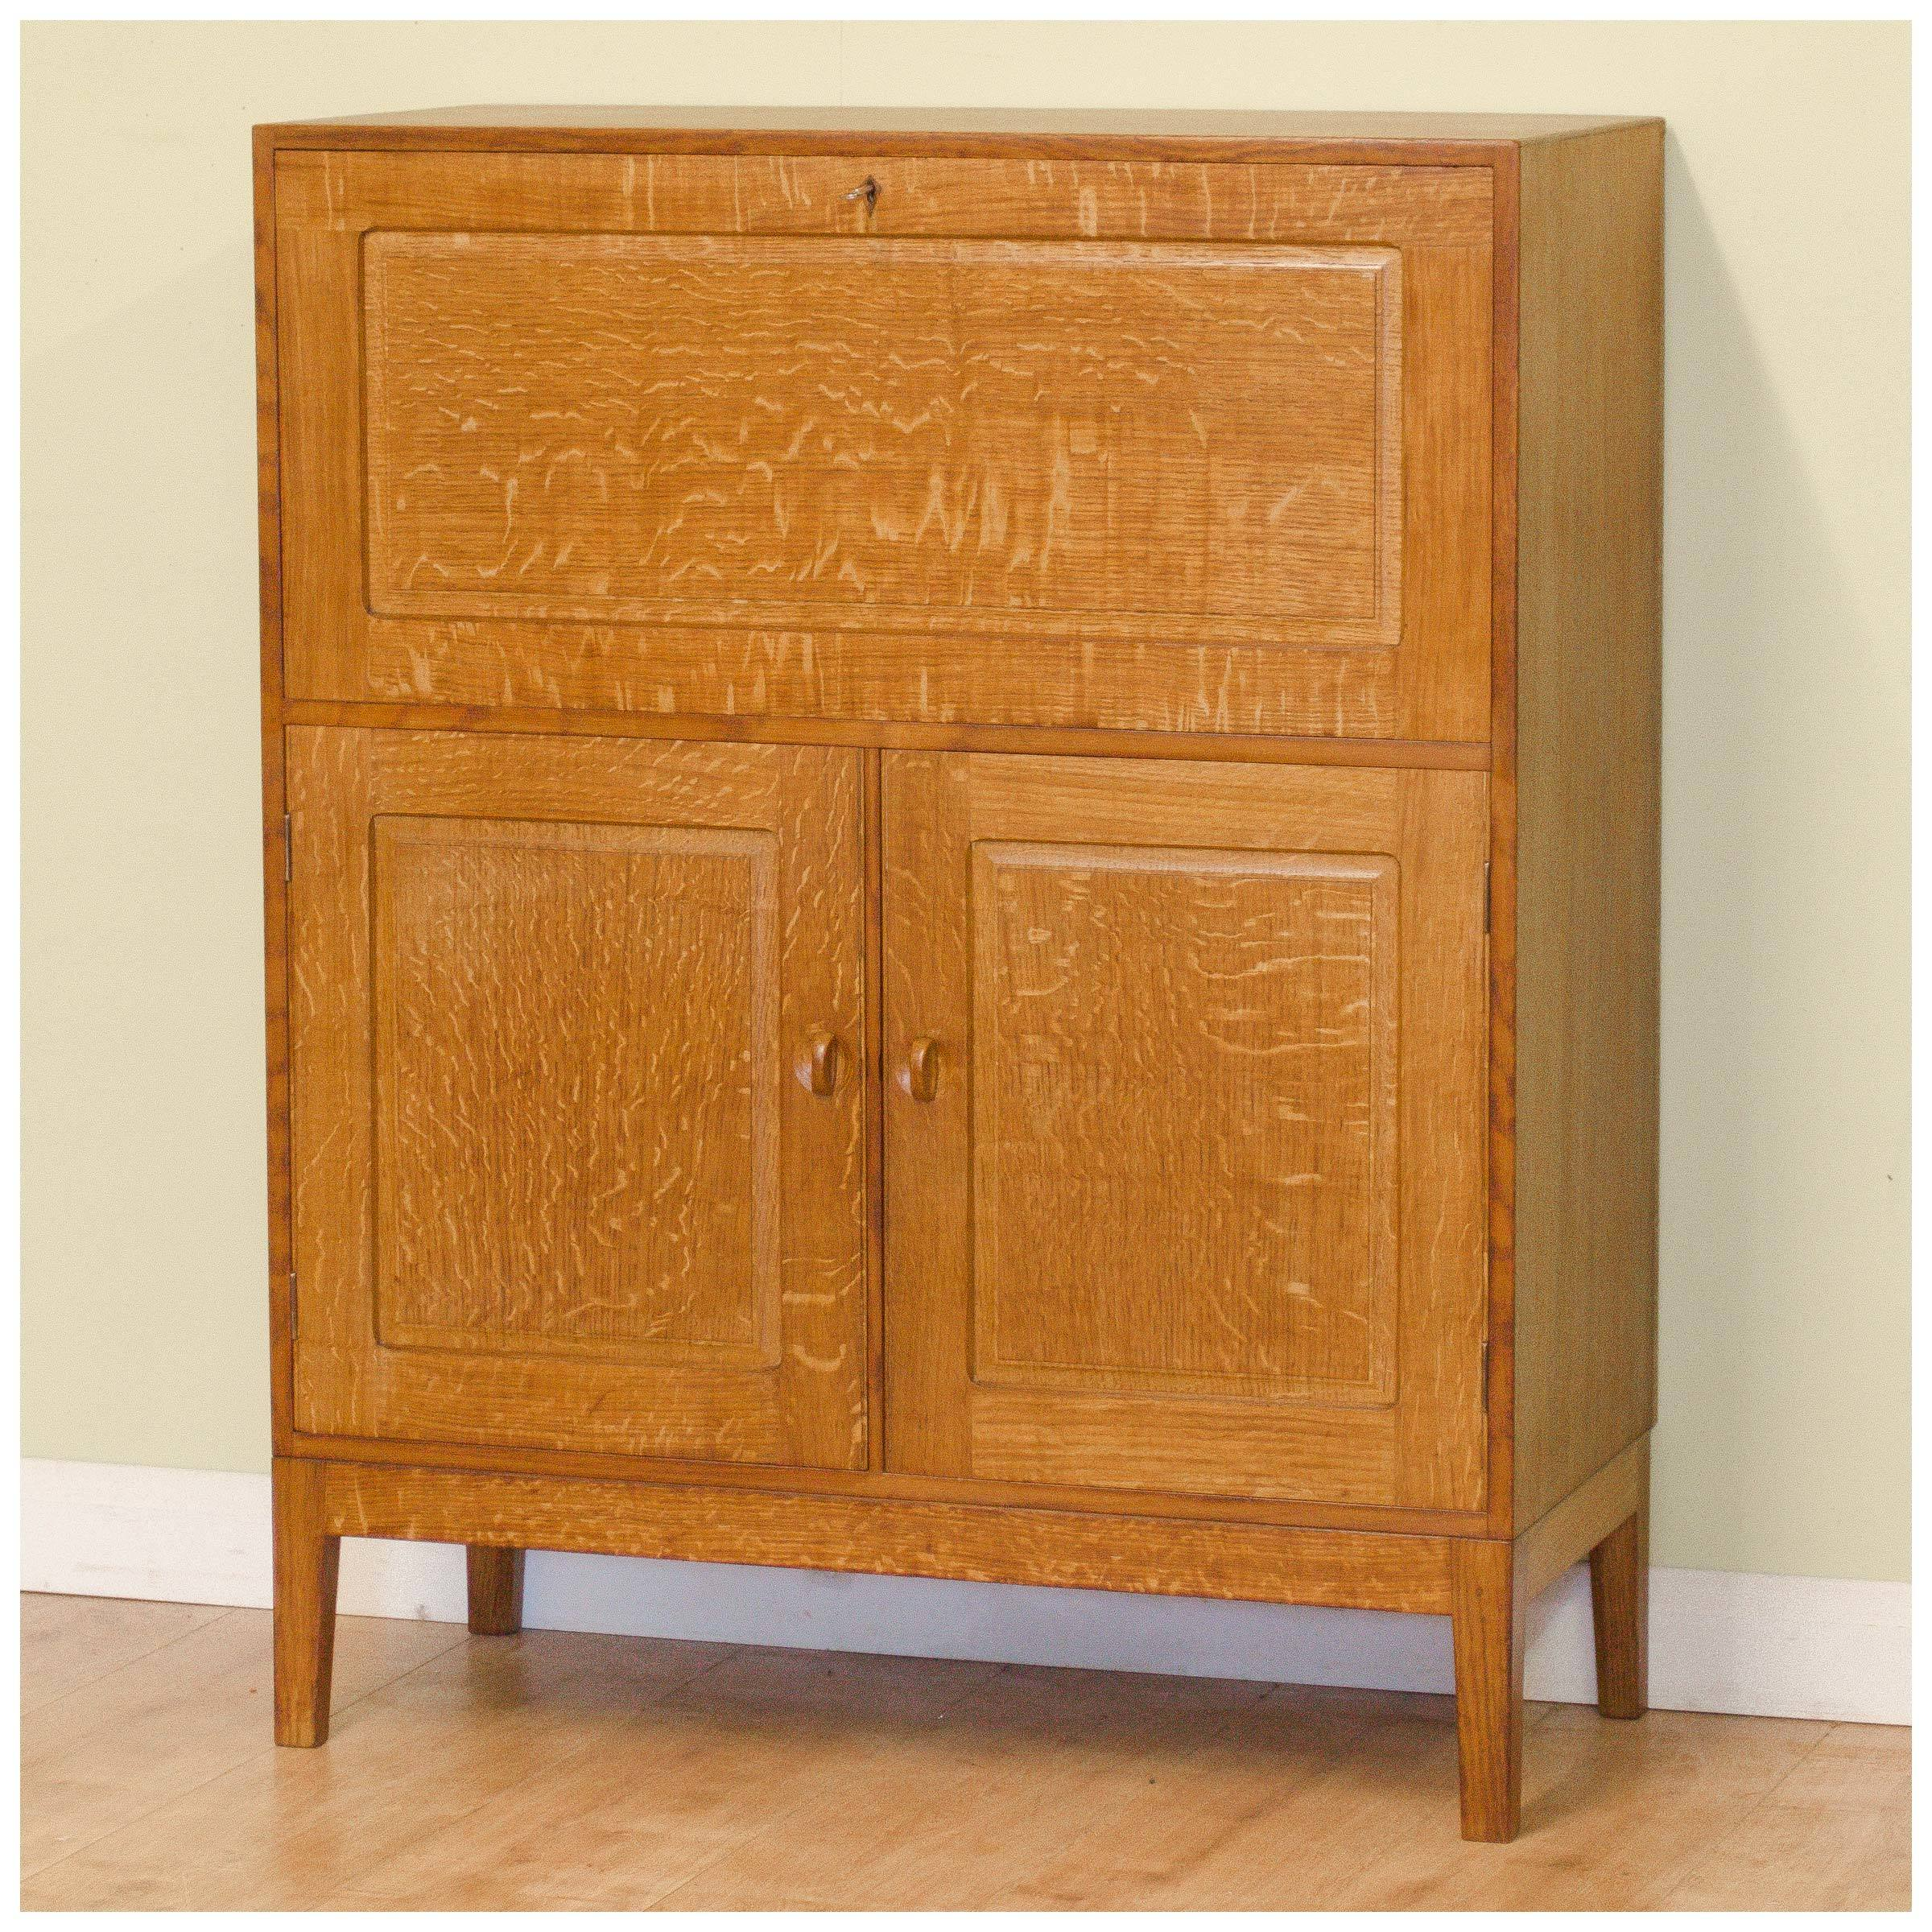 arts-and-crafts-oak-bureau-cabinet-by-edward-barnsley-the-barnsley-workshop-b0020140a.jpg